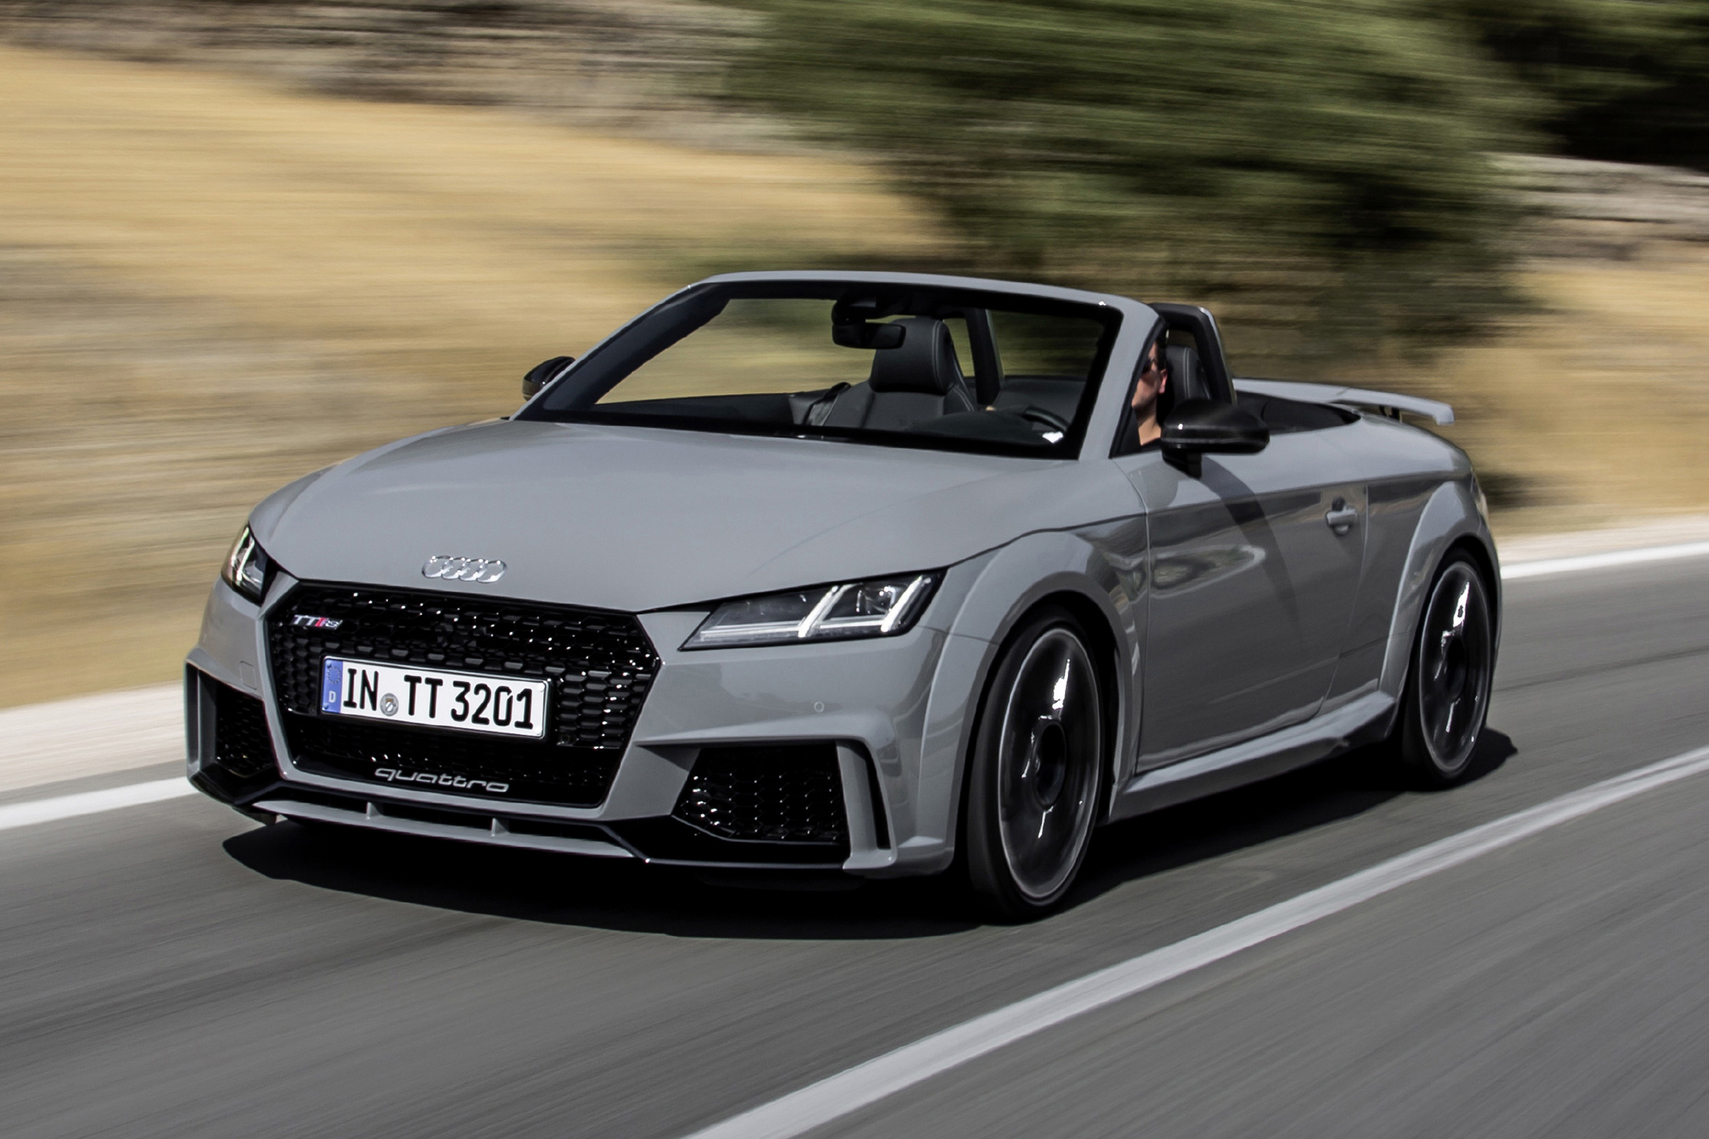 audi tt rs roadster 400 cv a cielo aperto prezzo da 76. Black Bedroom Furniture Sets. Home Design Ideas